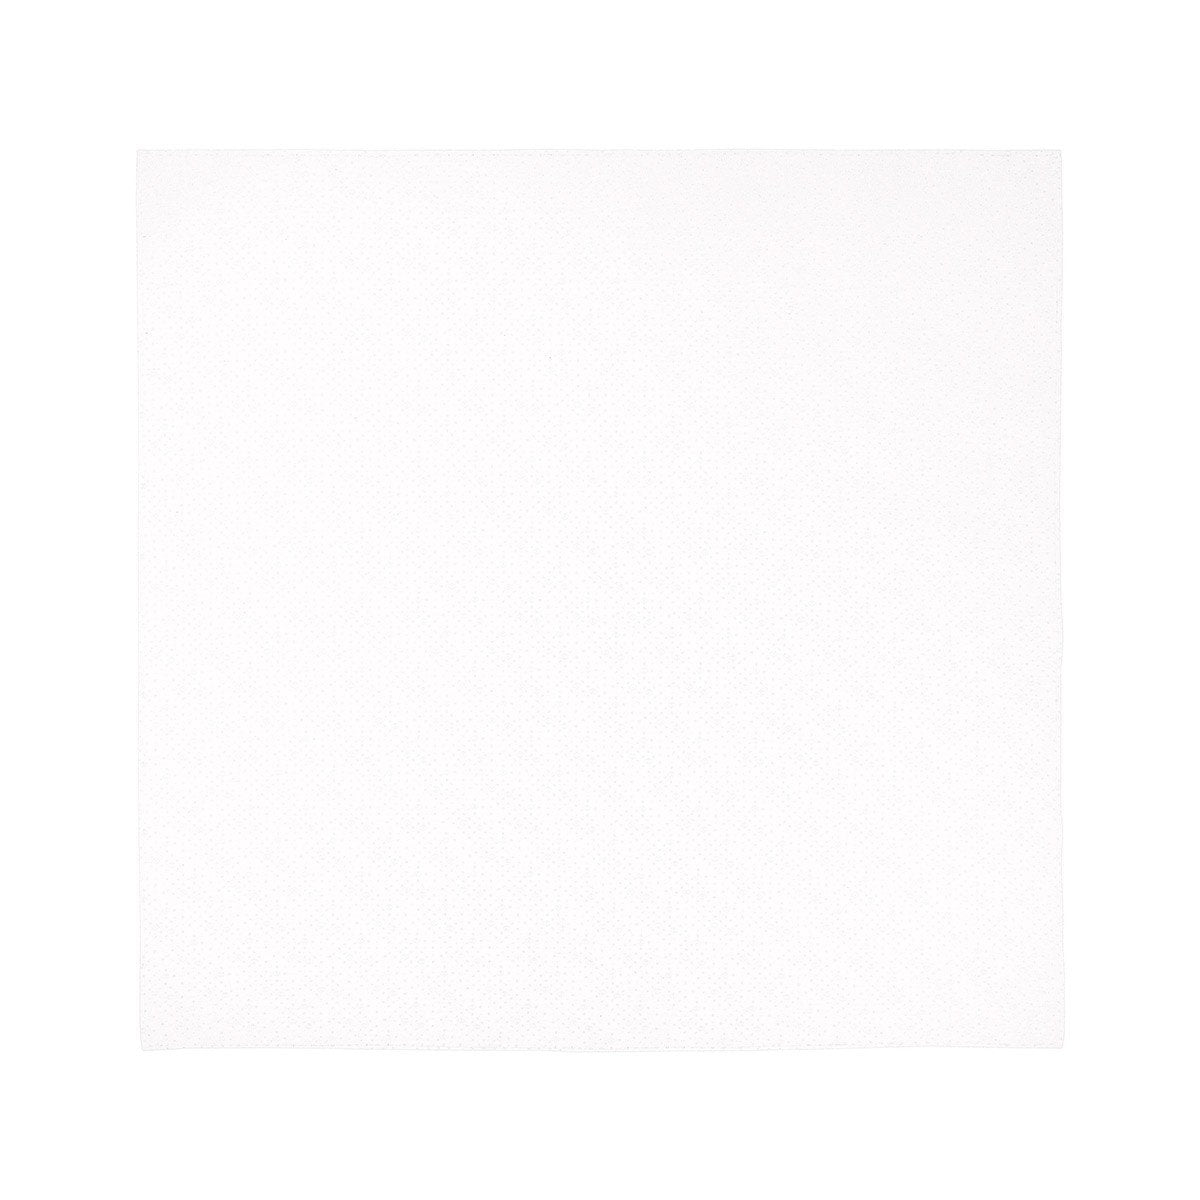 Atria Blanc White Table Linen Yves Delorme Fig Linens